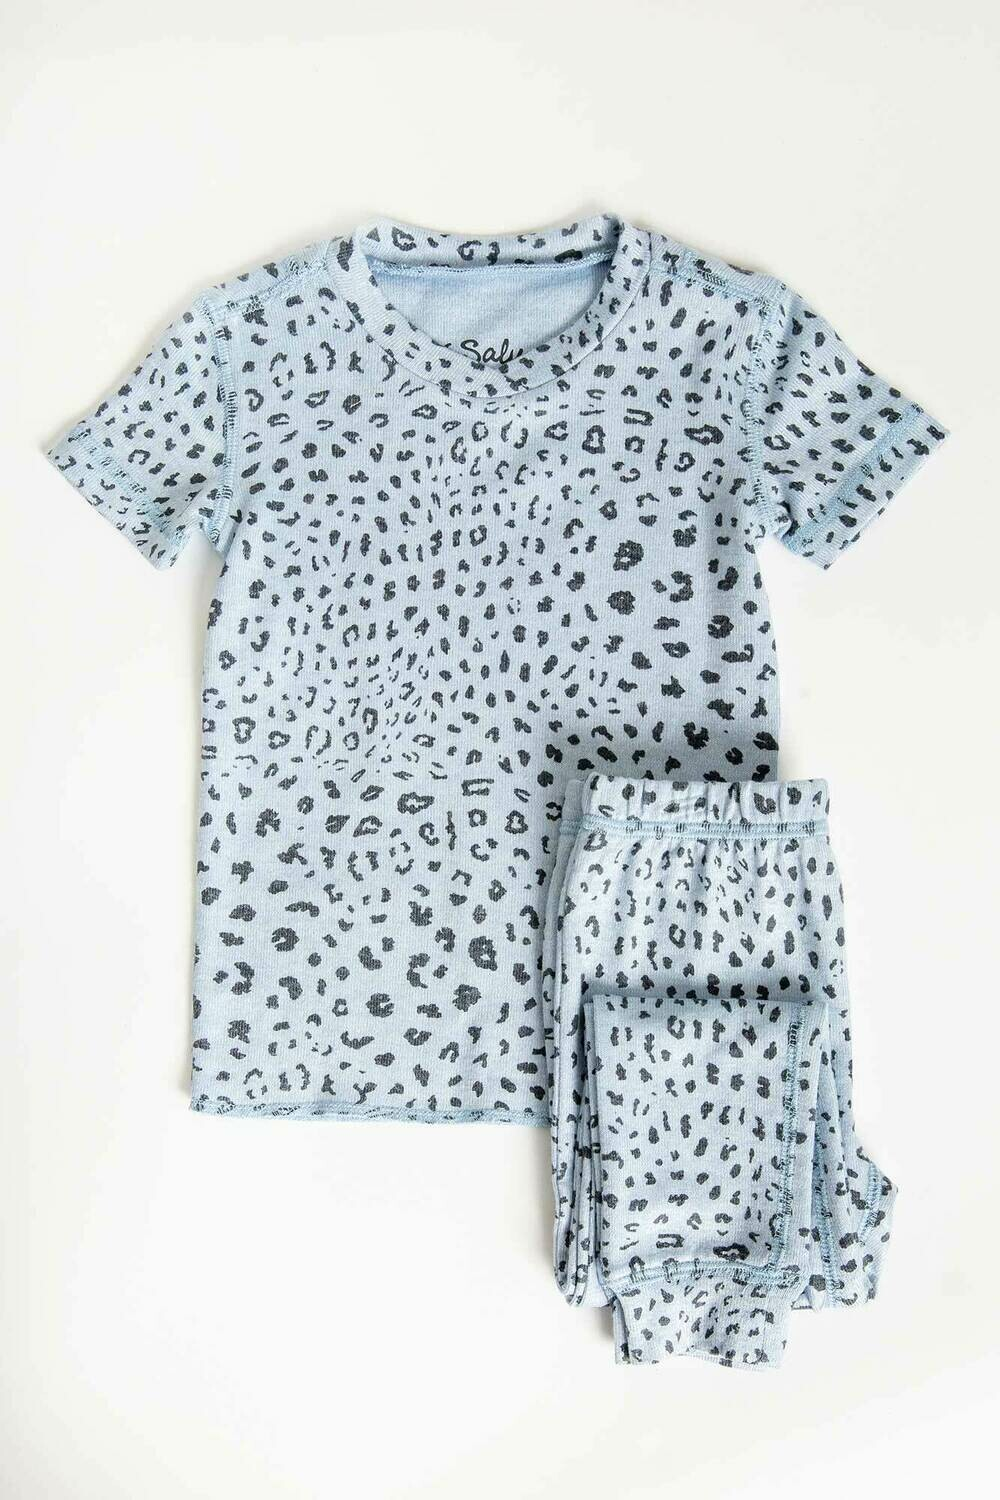 PJ Salvage Childrens Blue Leopard Children's Pajama Set Size 2 - 6